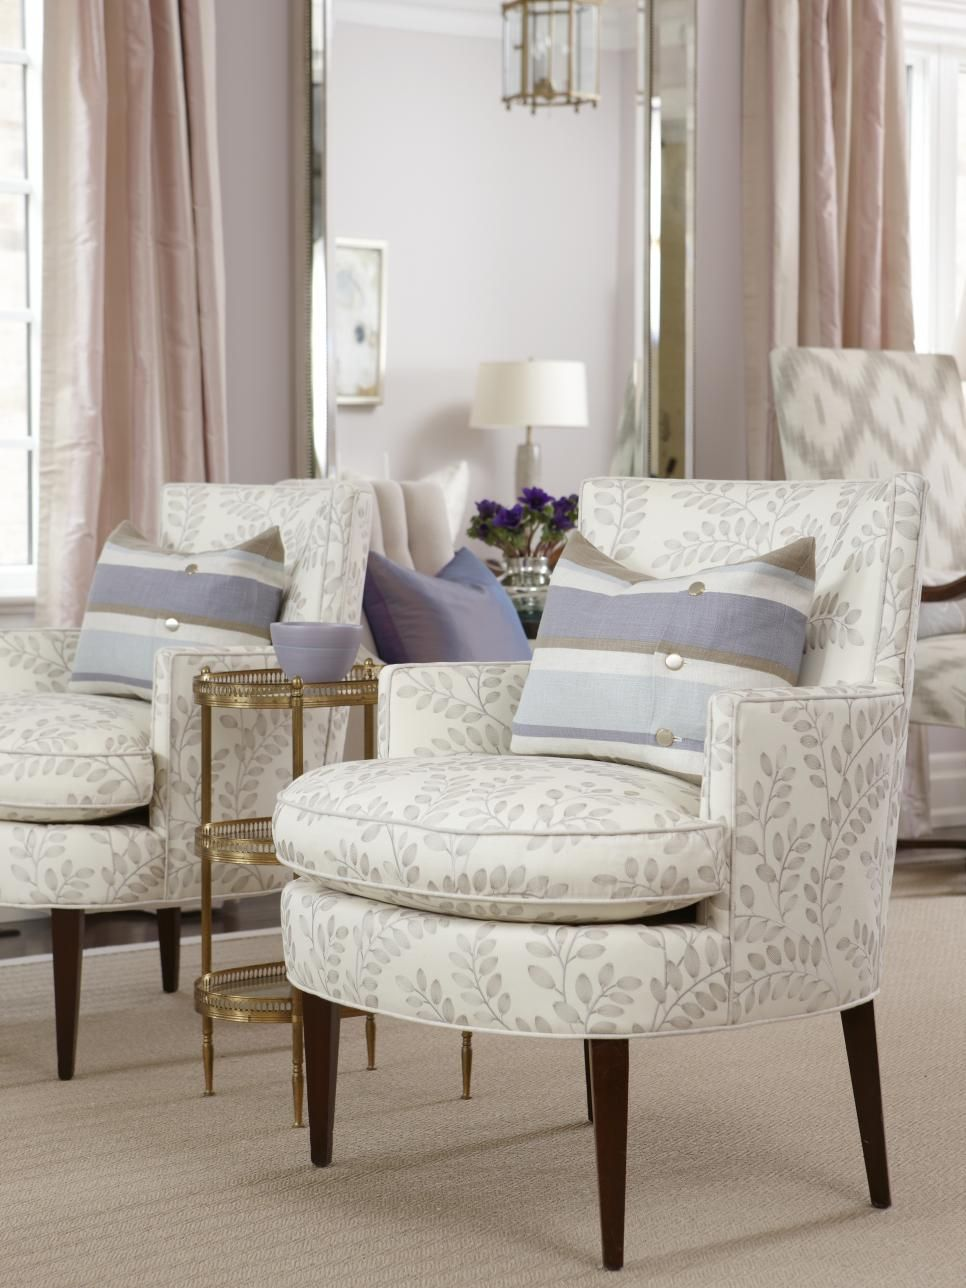 To keep this neutral space interesting, Sarah layered subtle patterns throughout the room.